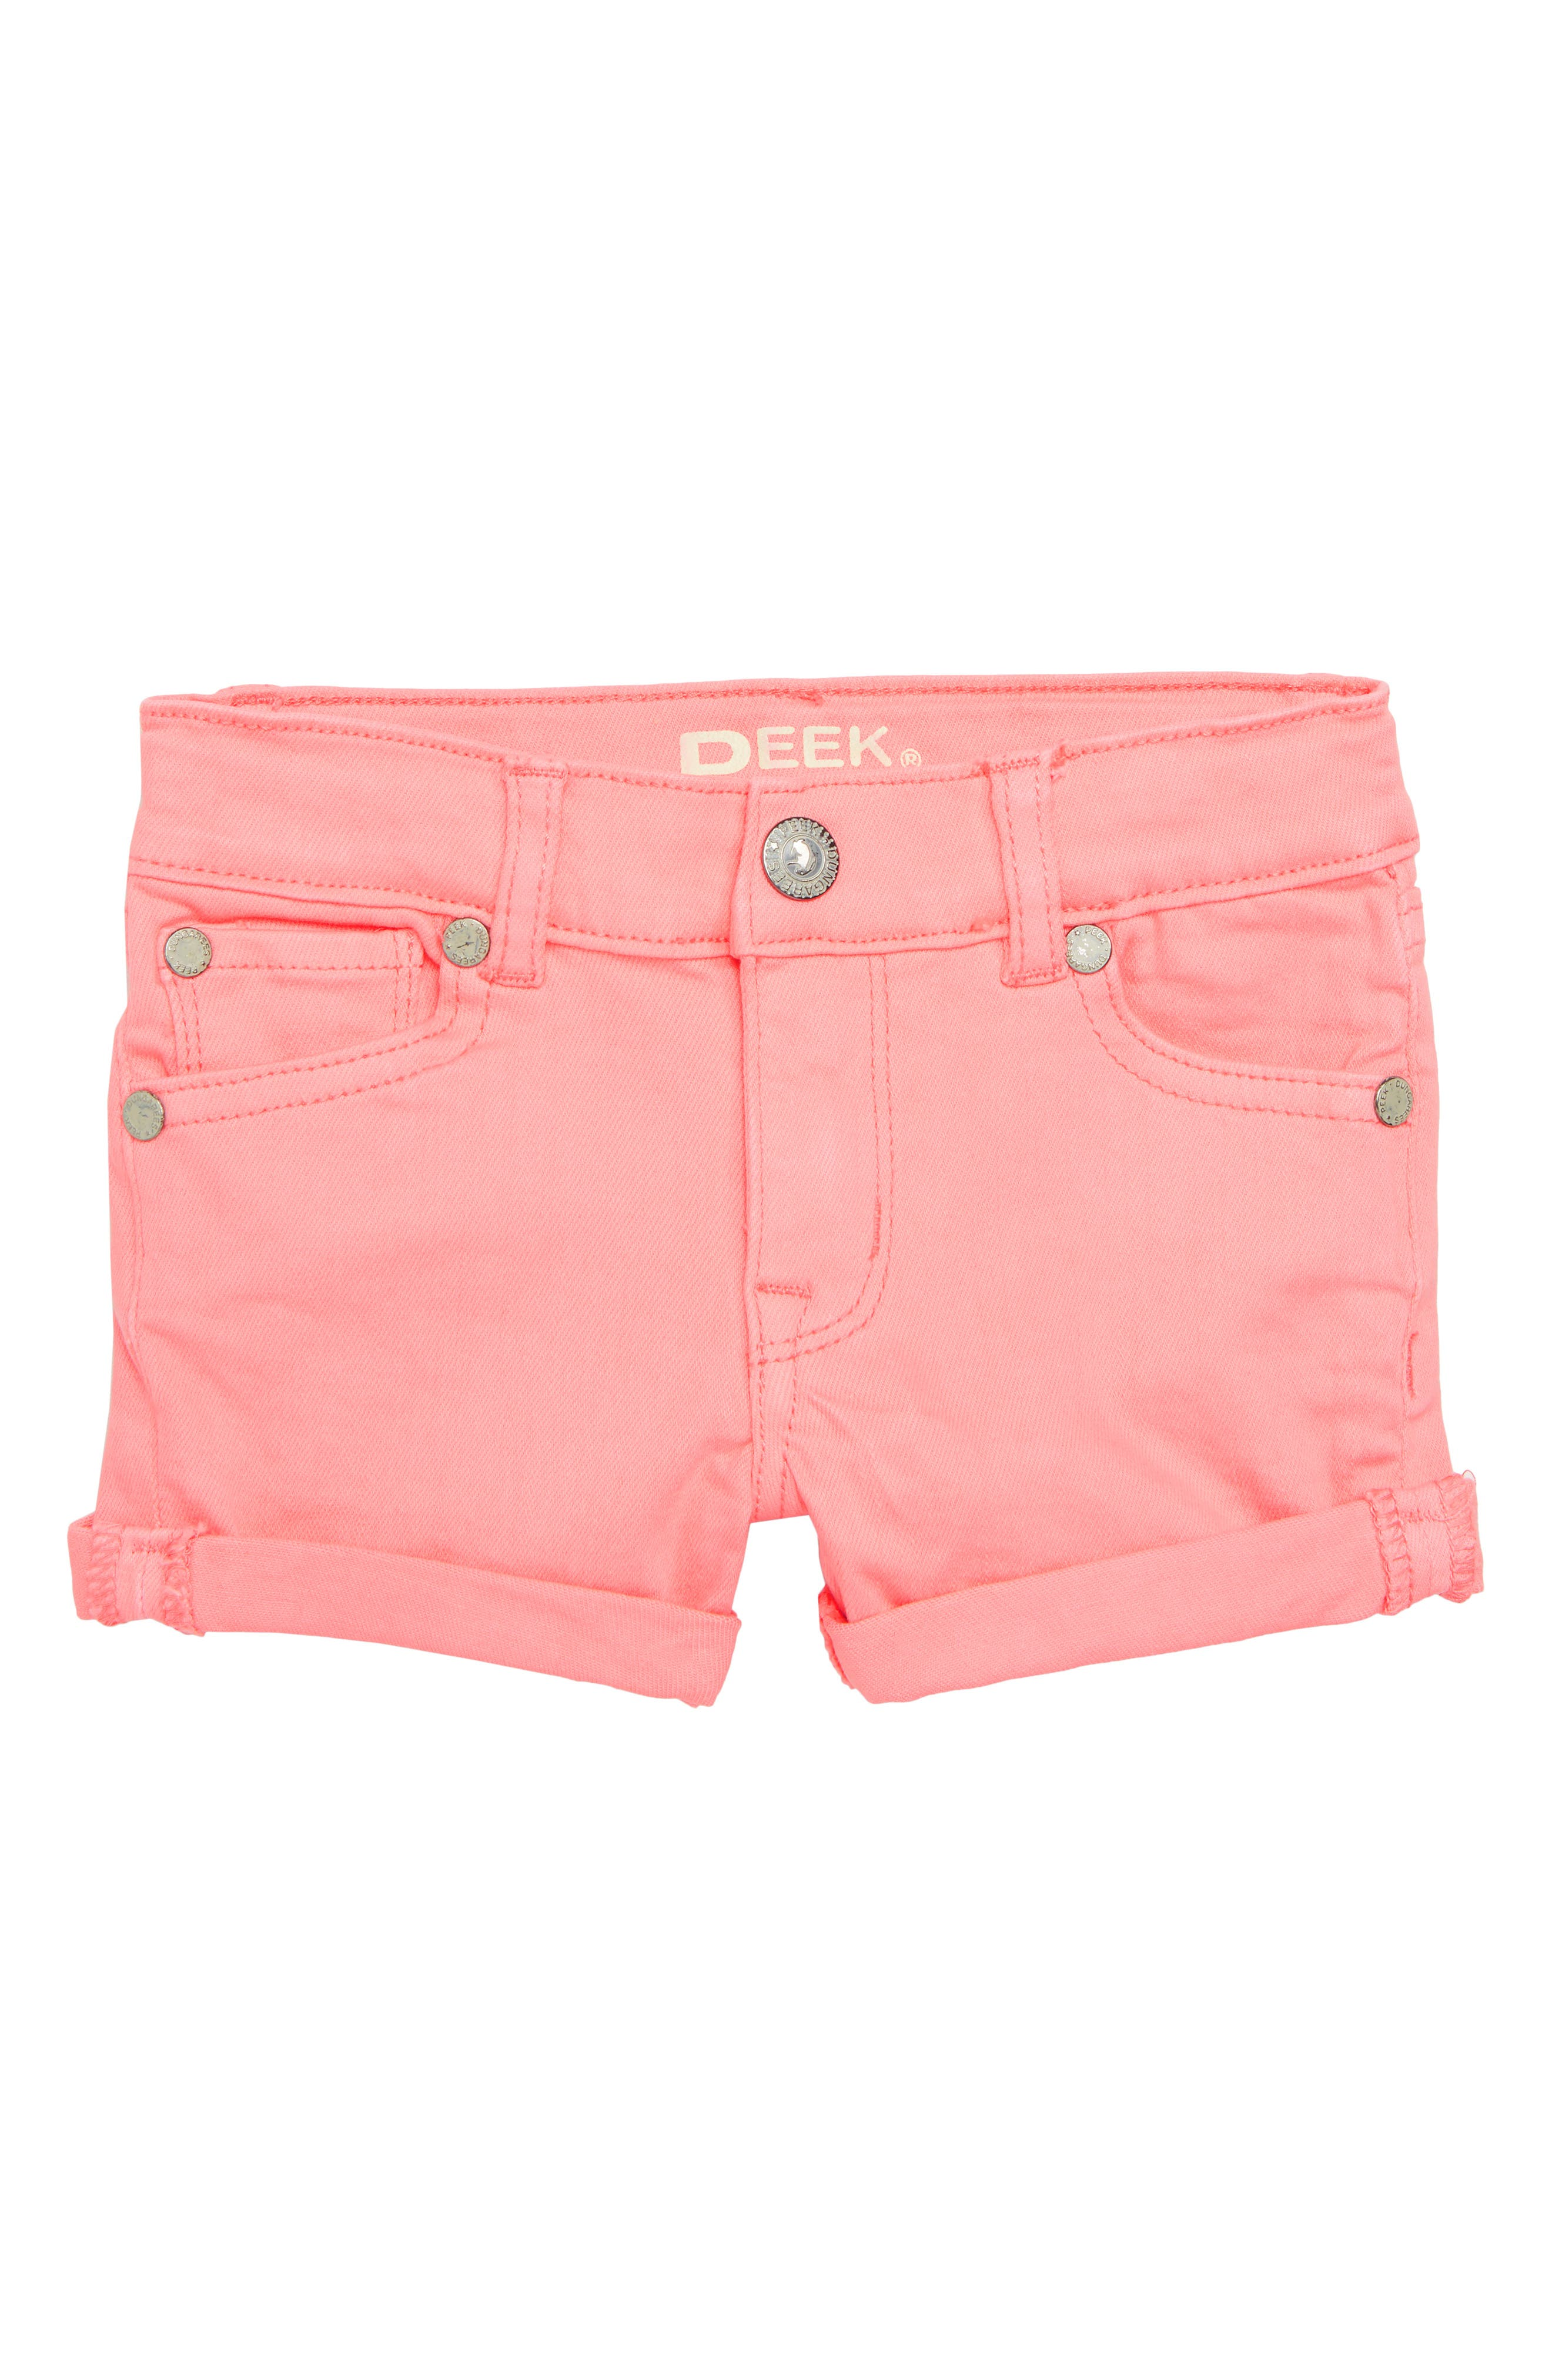 Griffin Stretch Cotton Shorts,                         Main,                         color, Neon Coral